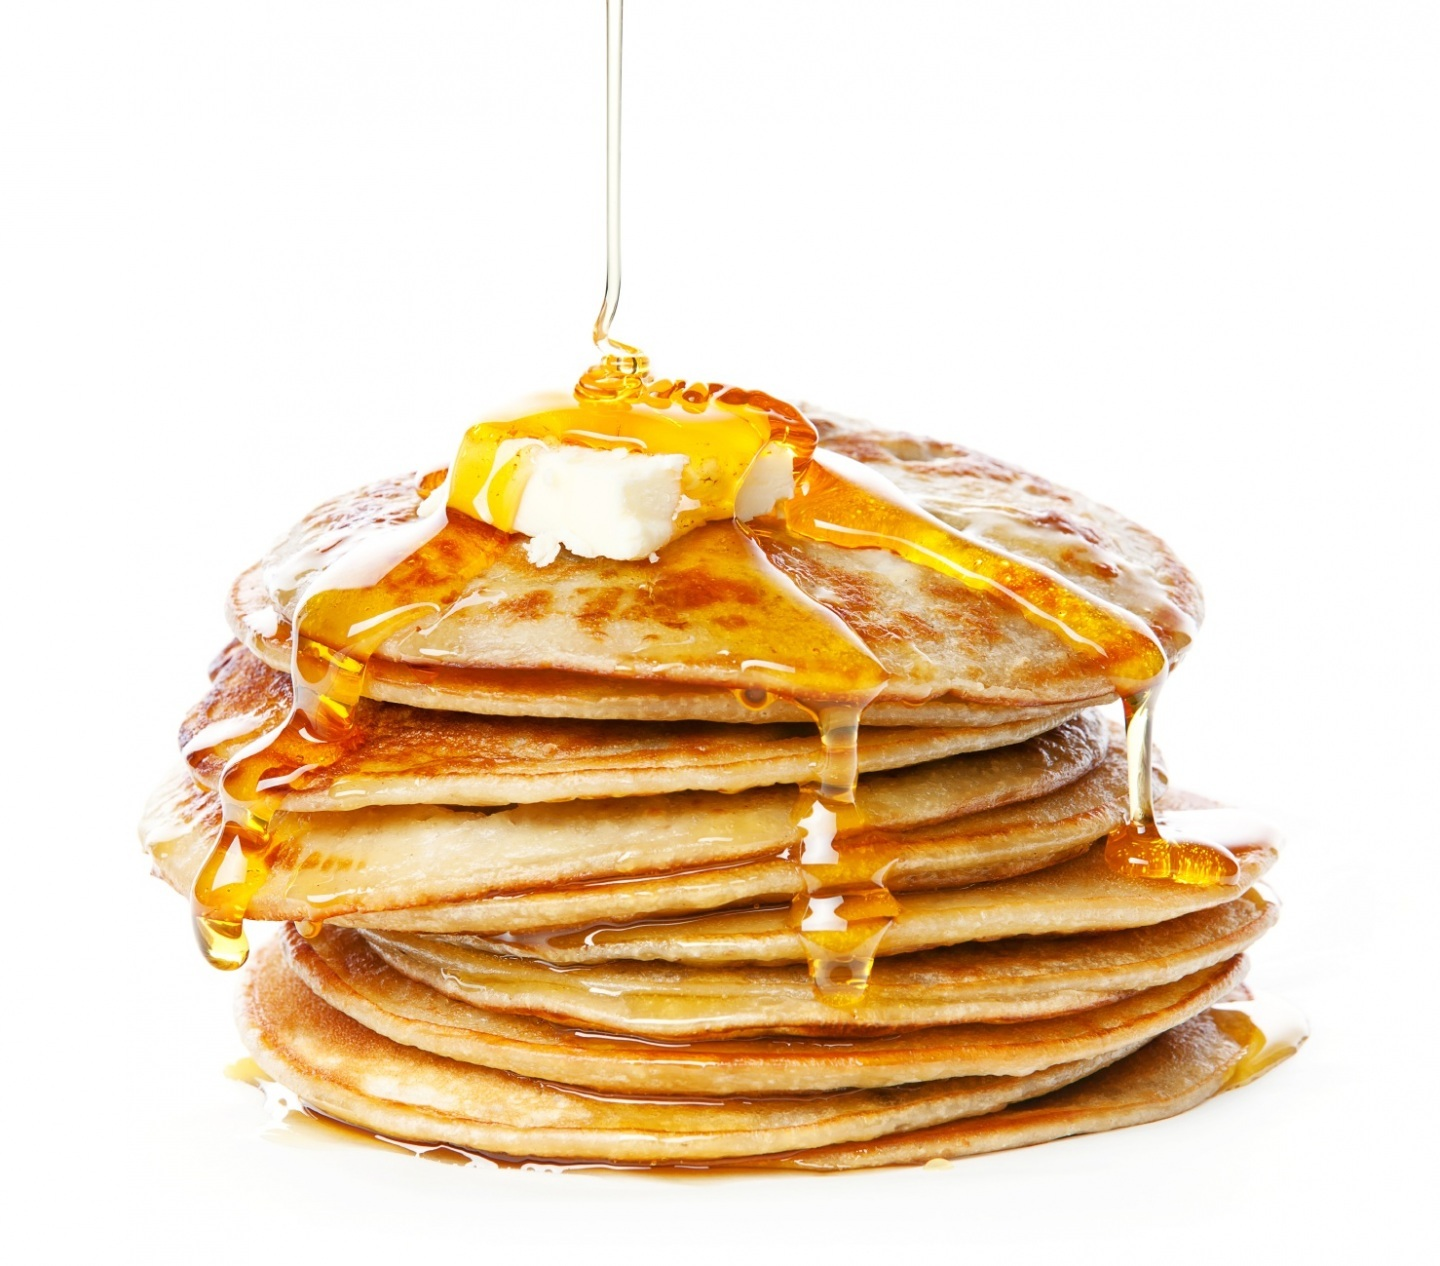 Pancakes images clipart pancake day photo shared by henrie8 fans.